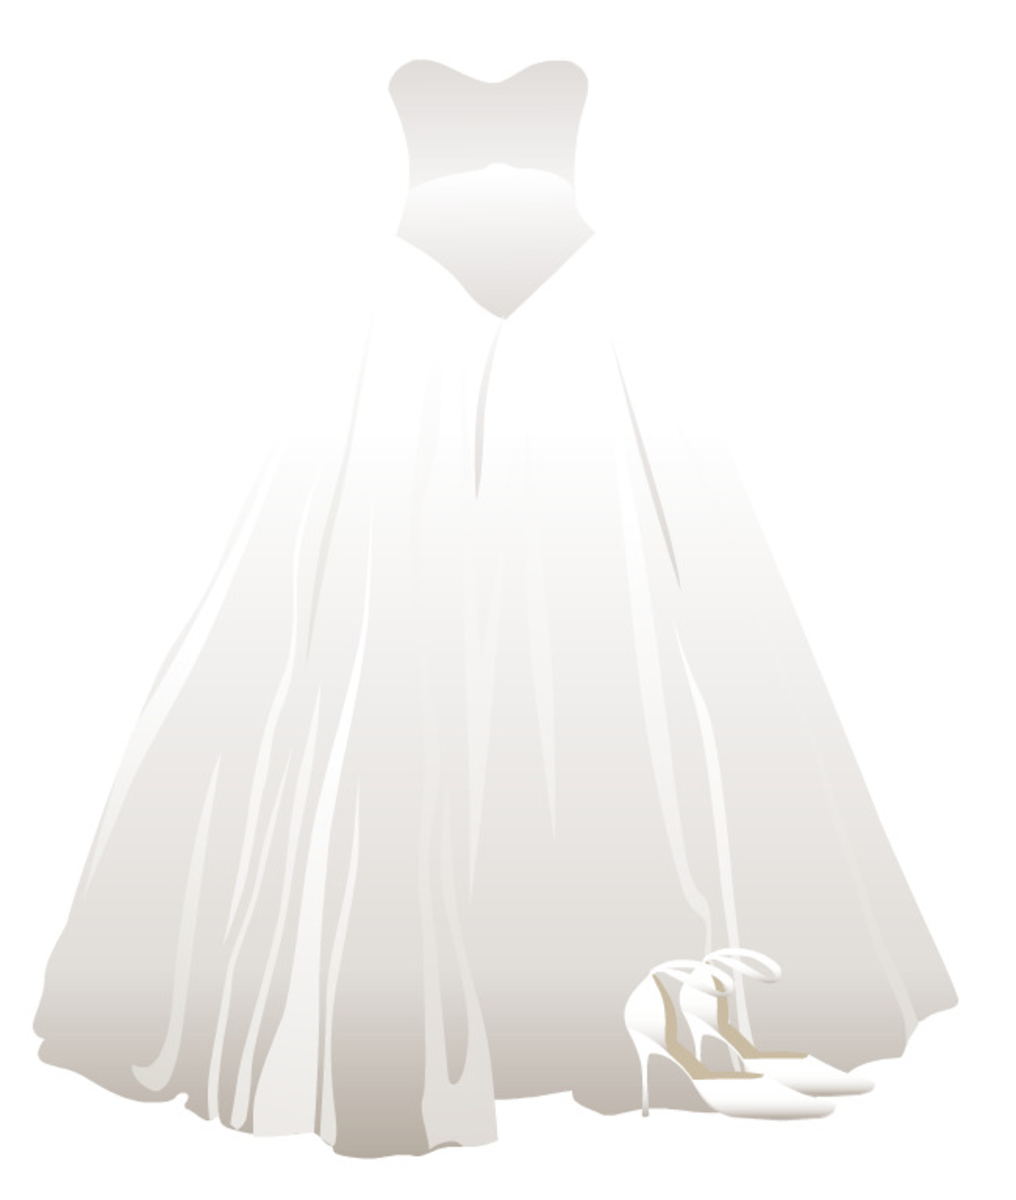 Free Quinceaera dress and shoes clip art